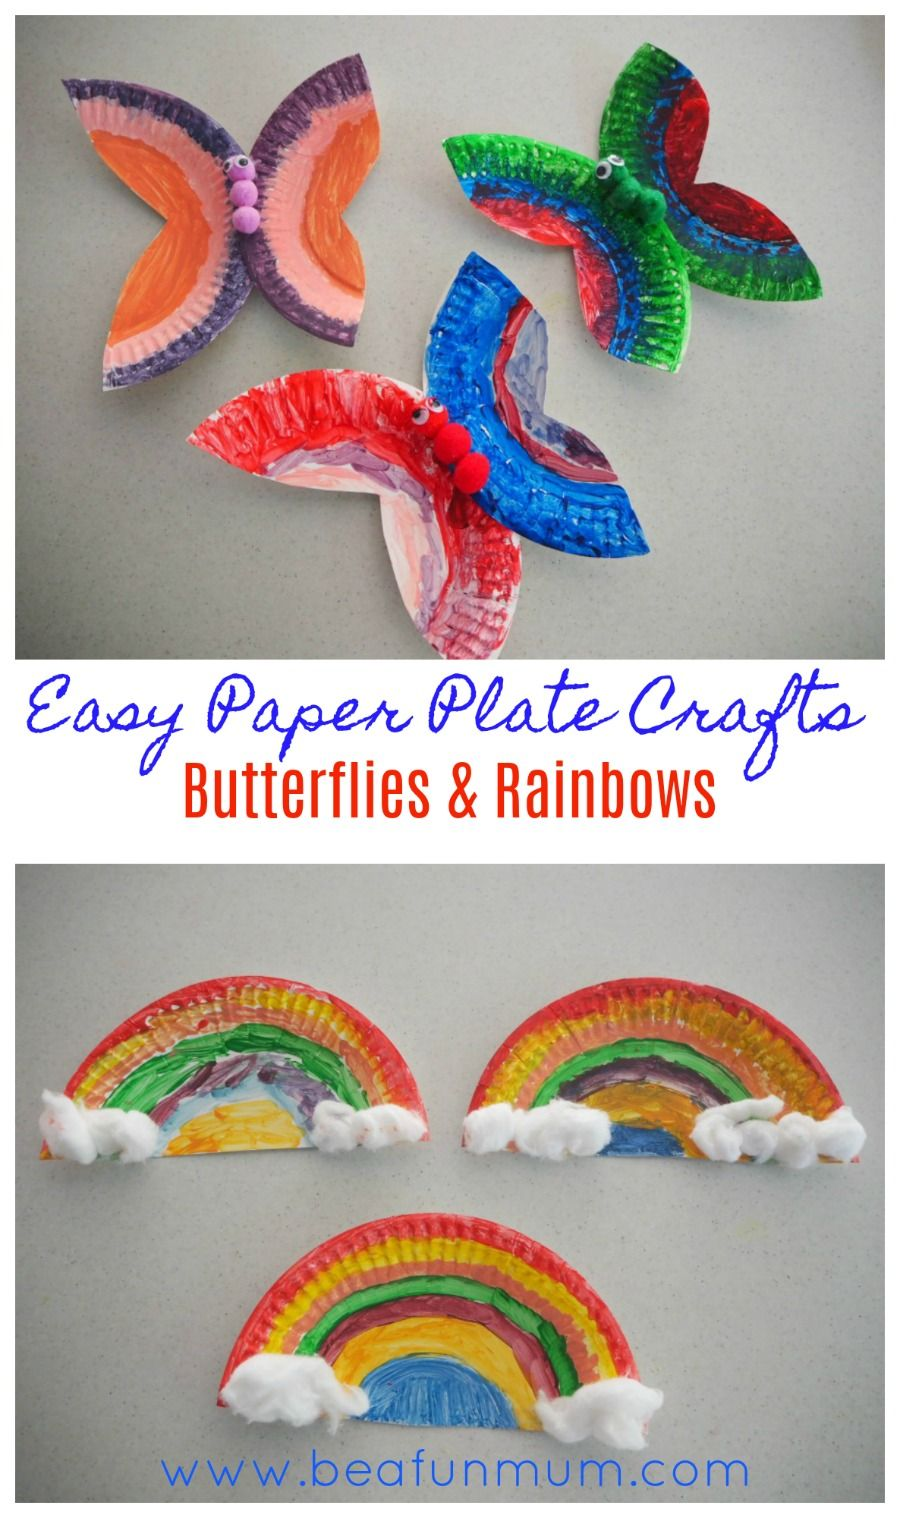 Easy Paper Plate Crafts Butterflies And Rainbows Be A Fun Mum